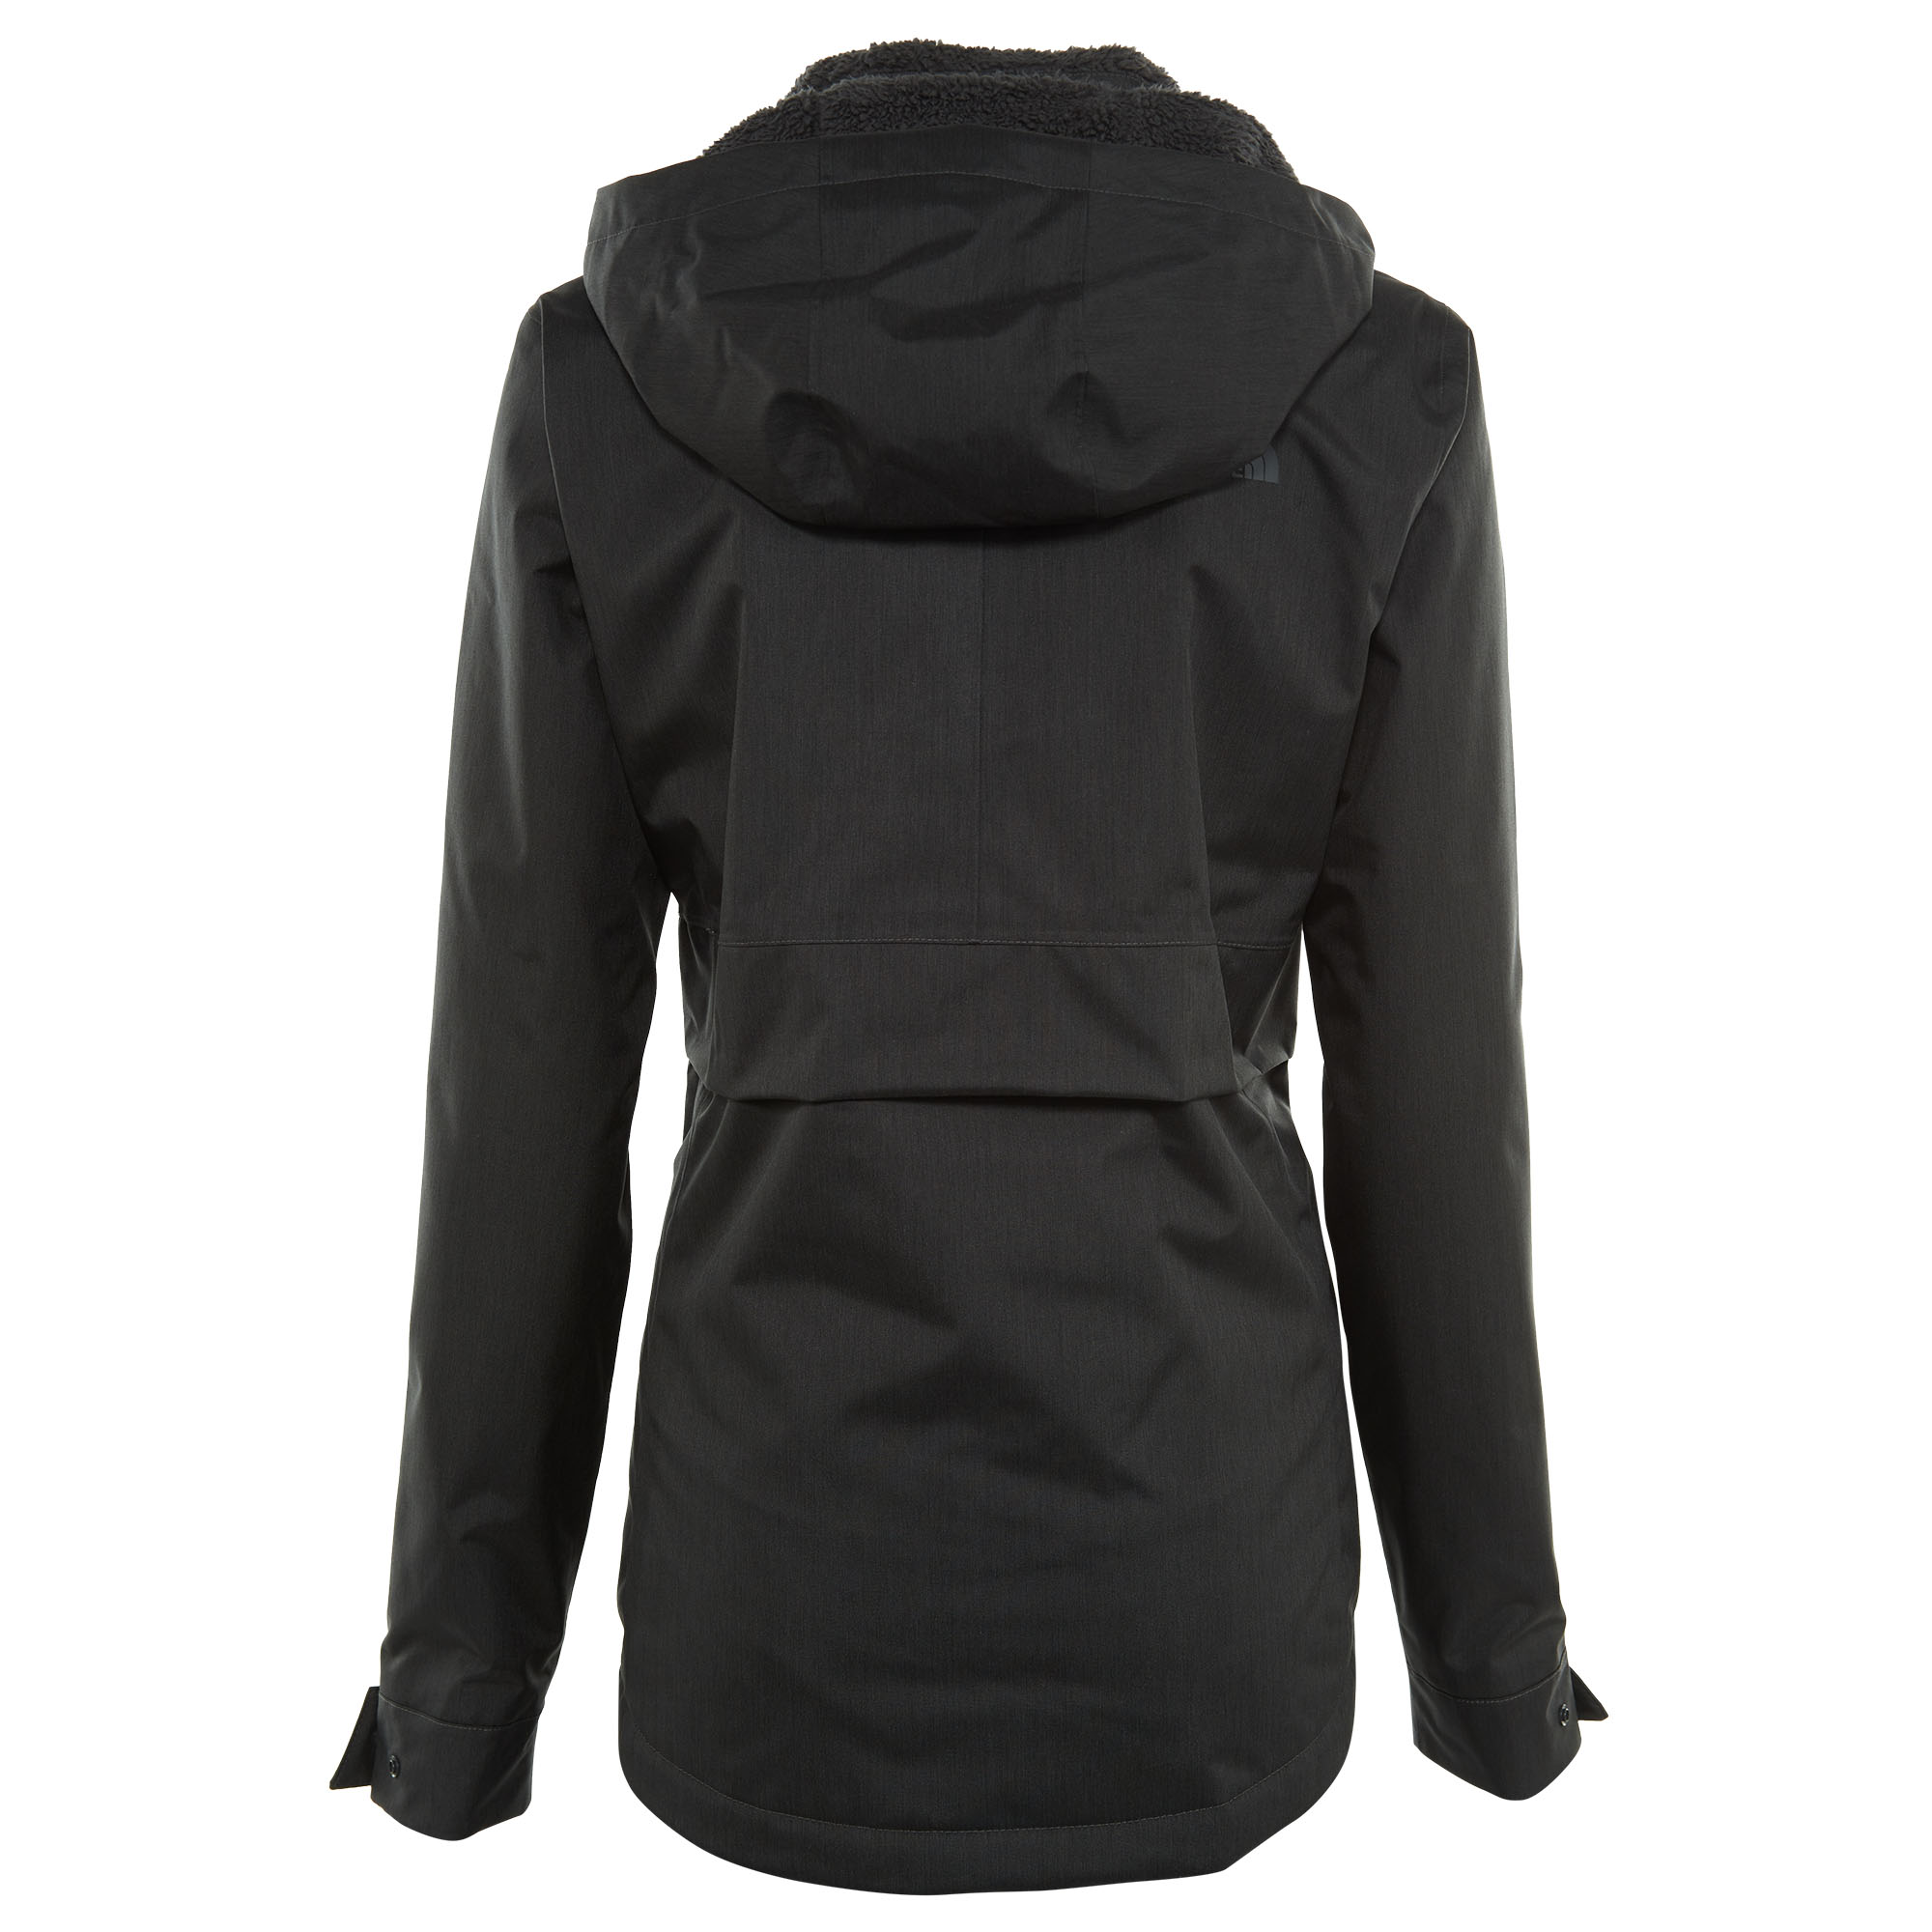 f5aa2b922759 Details about The North Face Womens Morialta Jacket A2VHJ-DYZ